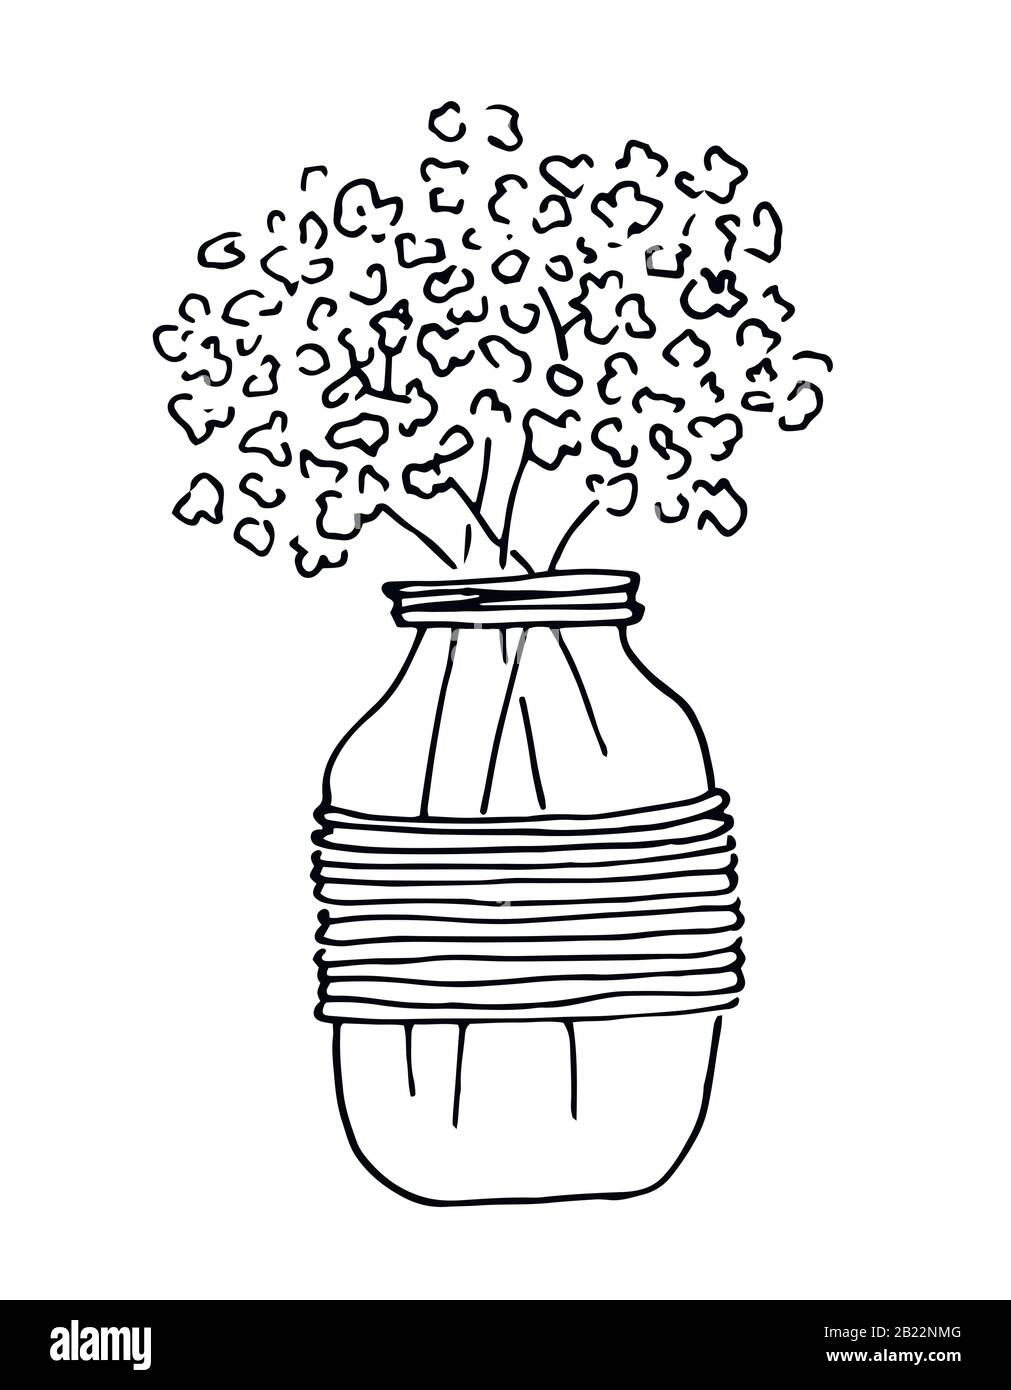 Bouquet flowers in glass jar, black lines art, isolated on white background. Illustration for invitation, greeting cards. Stock Vector